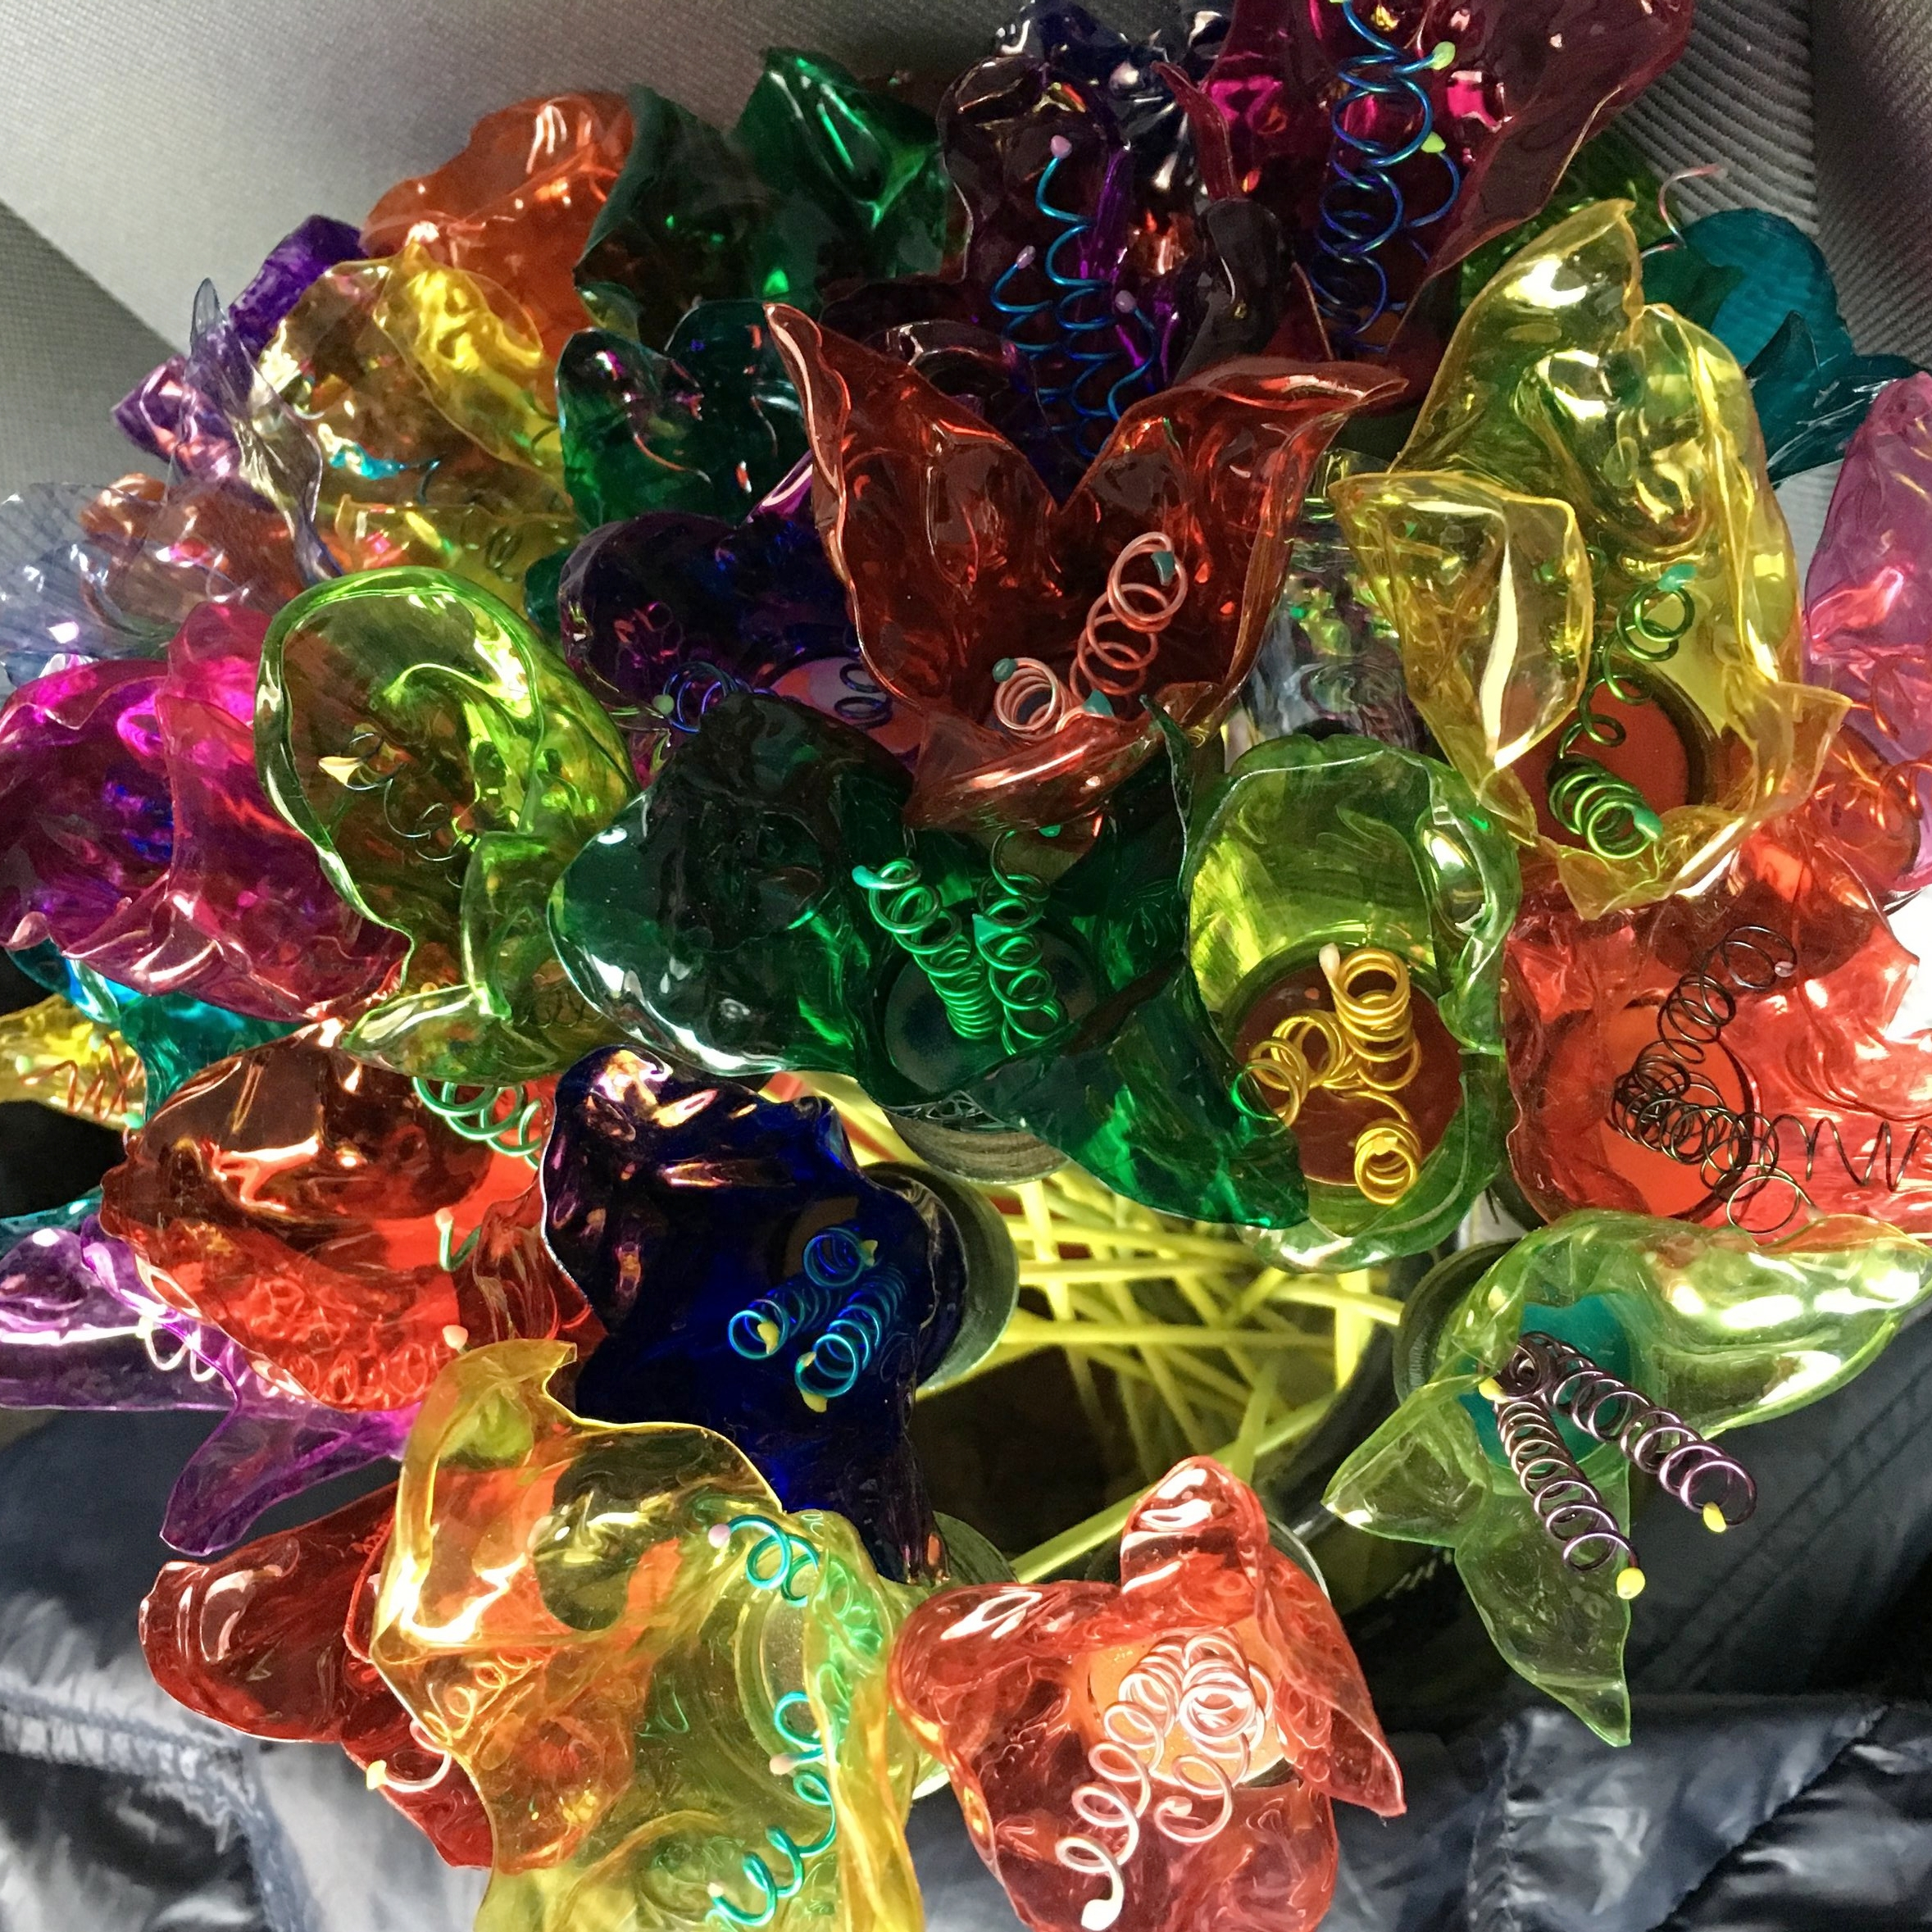 flowers made from water bottles! - The MOM in your life and the MOM of the Earth will be just giddy receiving these vibrant flowers made with upcycled water bottles!! No two are the same!!CLICK HERE TO FIND OUT HOW TO GET THEM BY MOM'S DAY!!